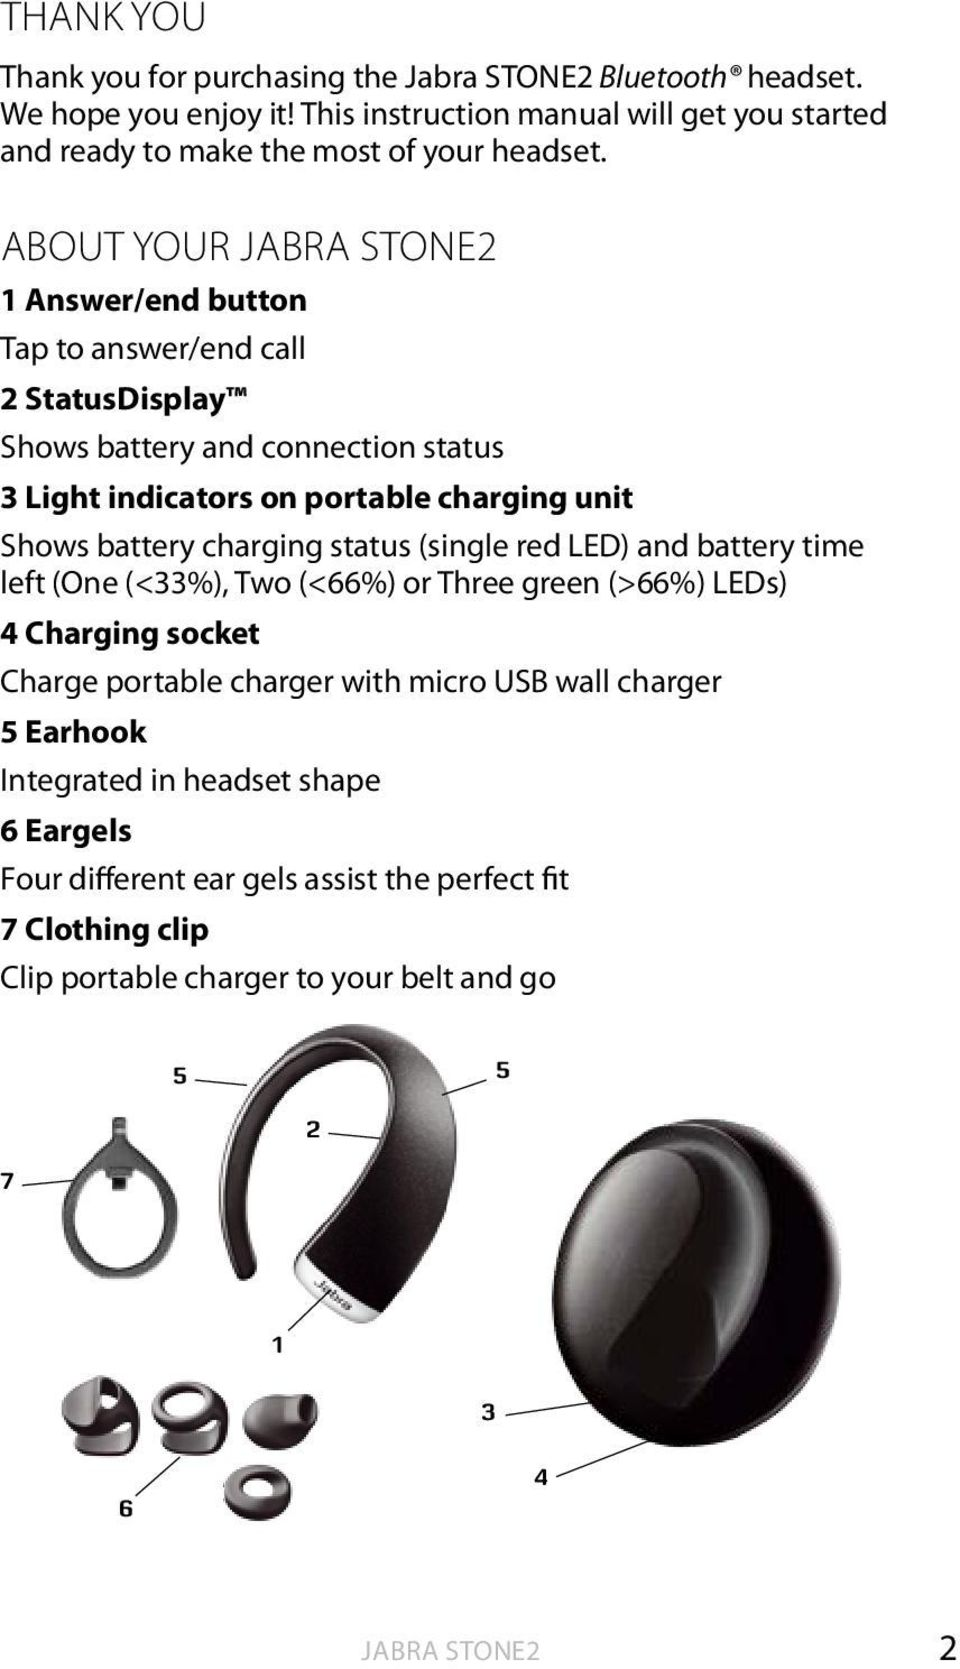 ABOUT YOUR JABRA STONE2 1 Answer/end button Tap to answer/end call 2 StatusDisplay Shows battery and connection status 3 Light indicators on portable charging unit Shows battery